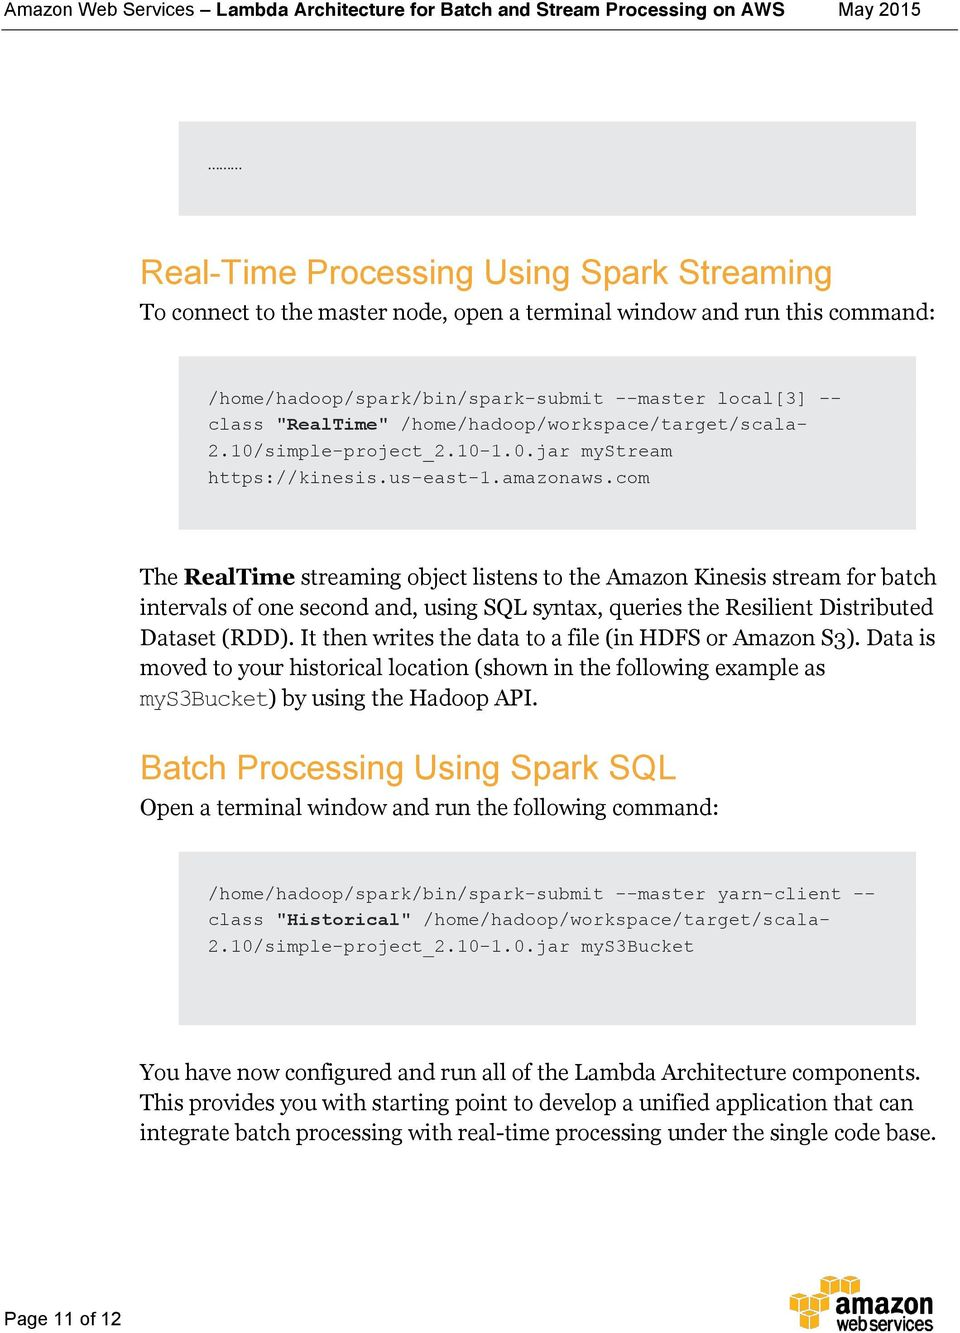 Lambda Architecture for Batch and Real- Time Processing on